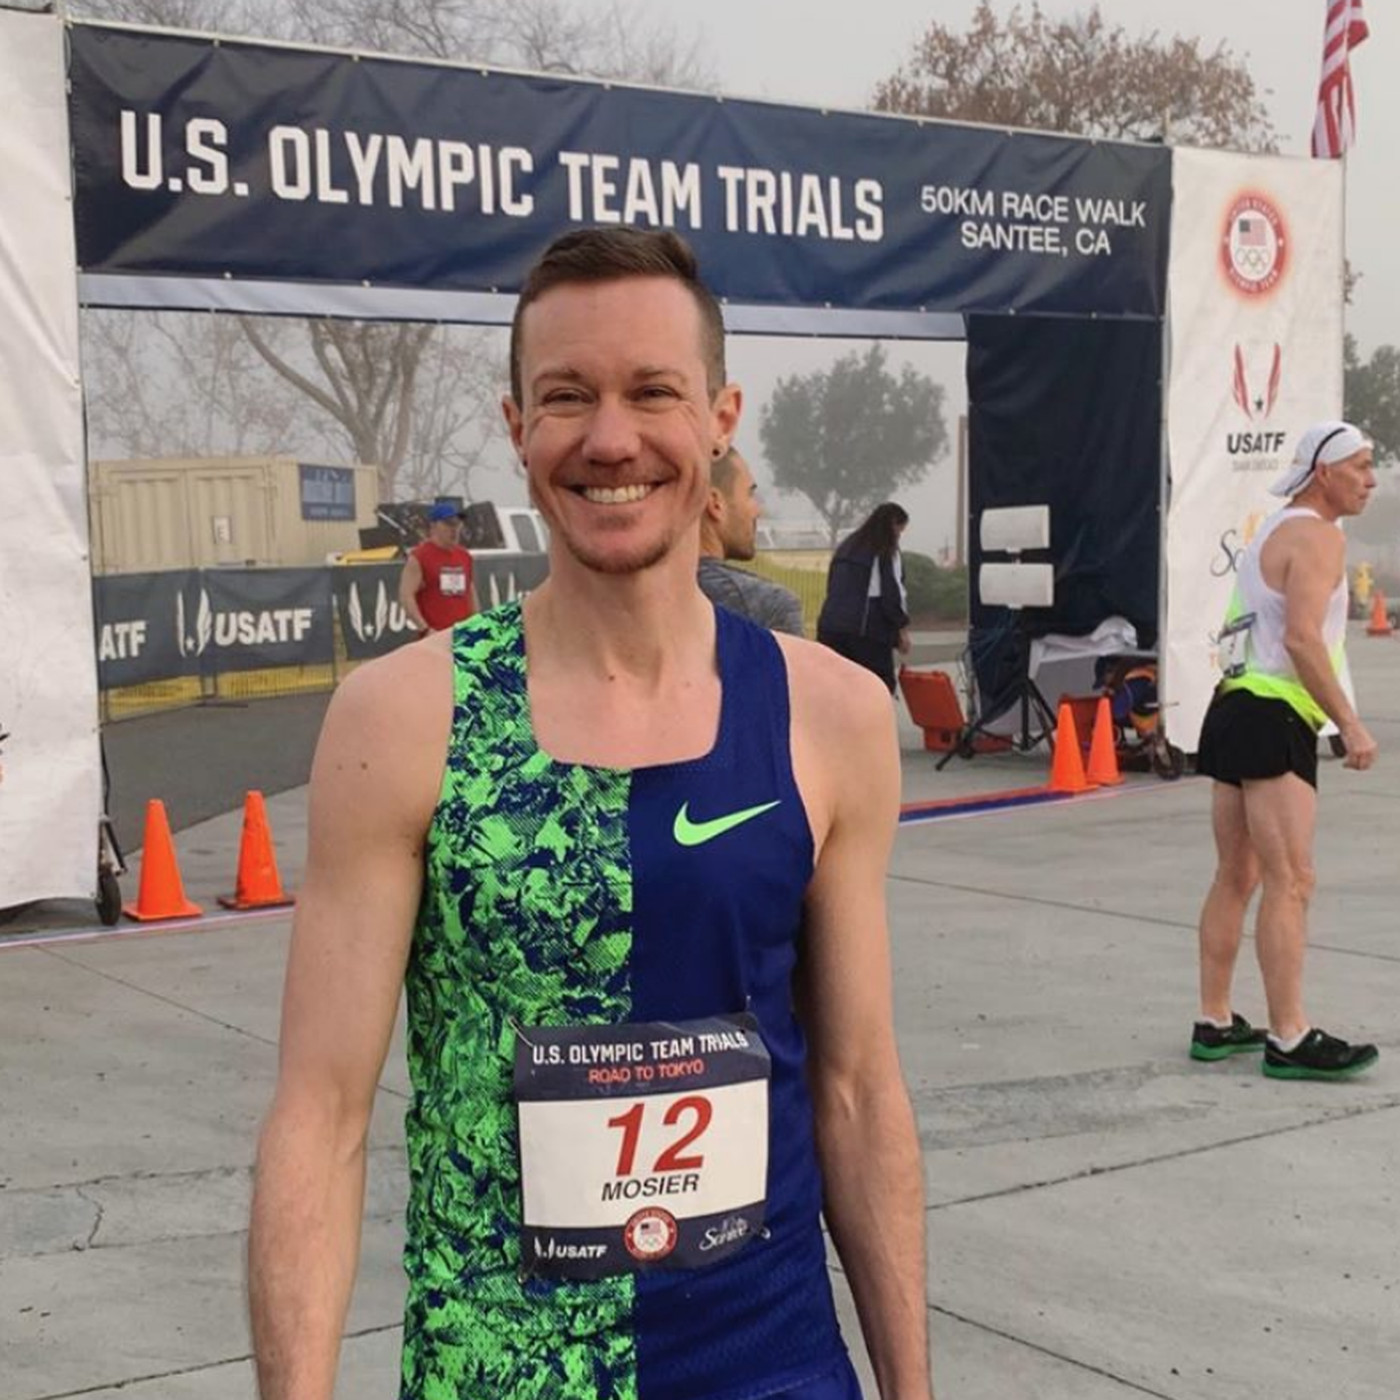 Chris Mosier makes history at 2020 Olympic trials, vows to race ...